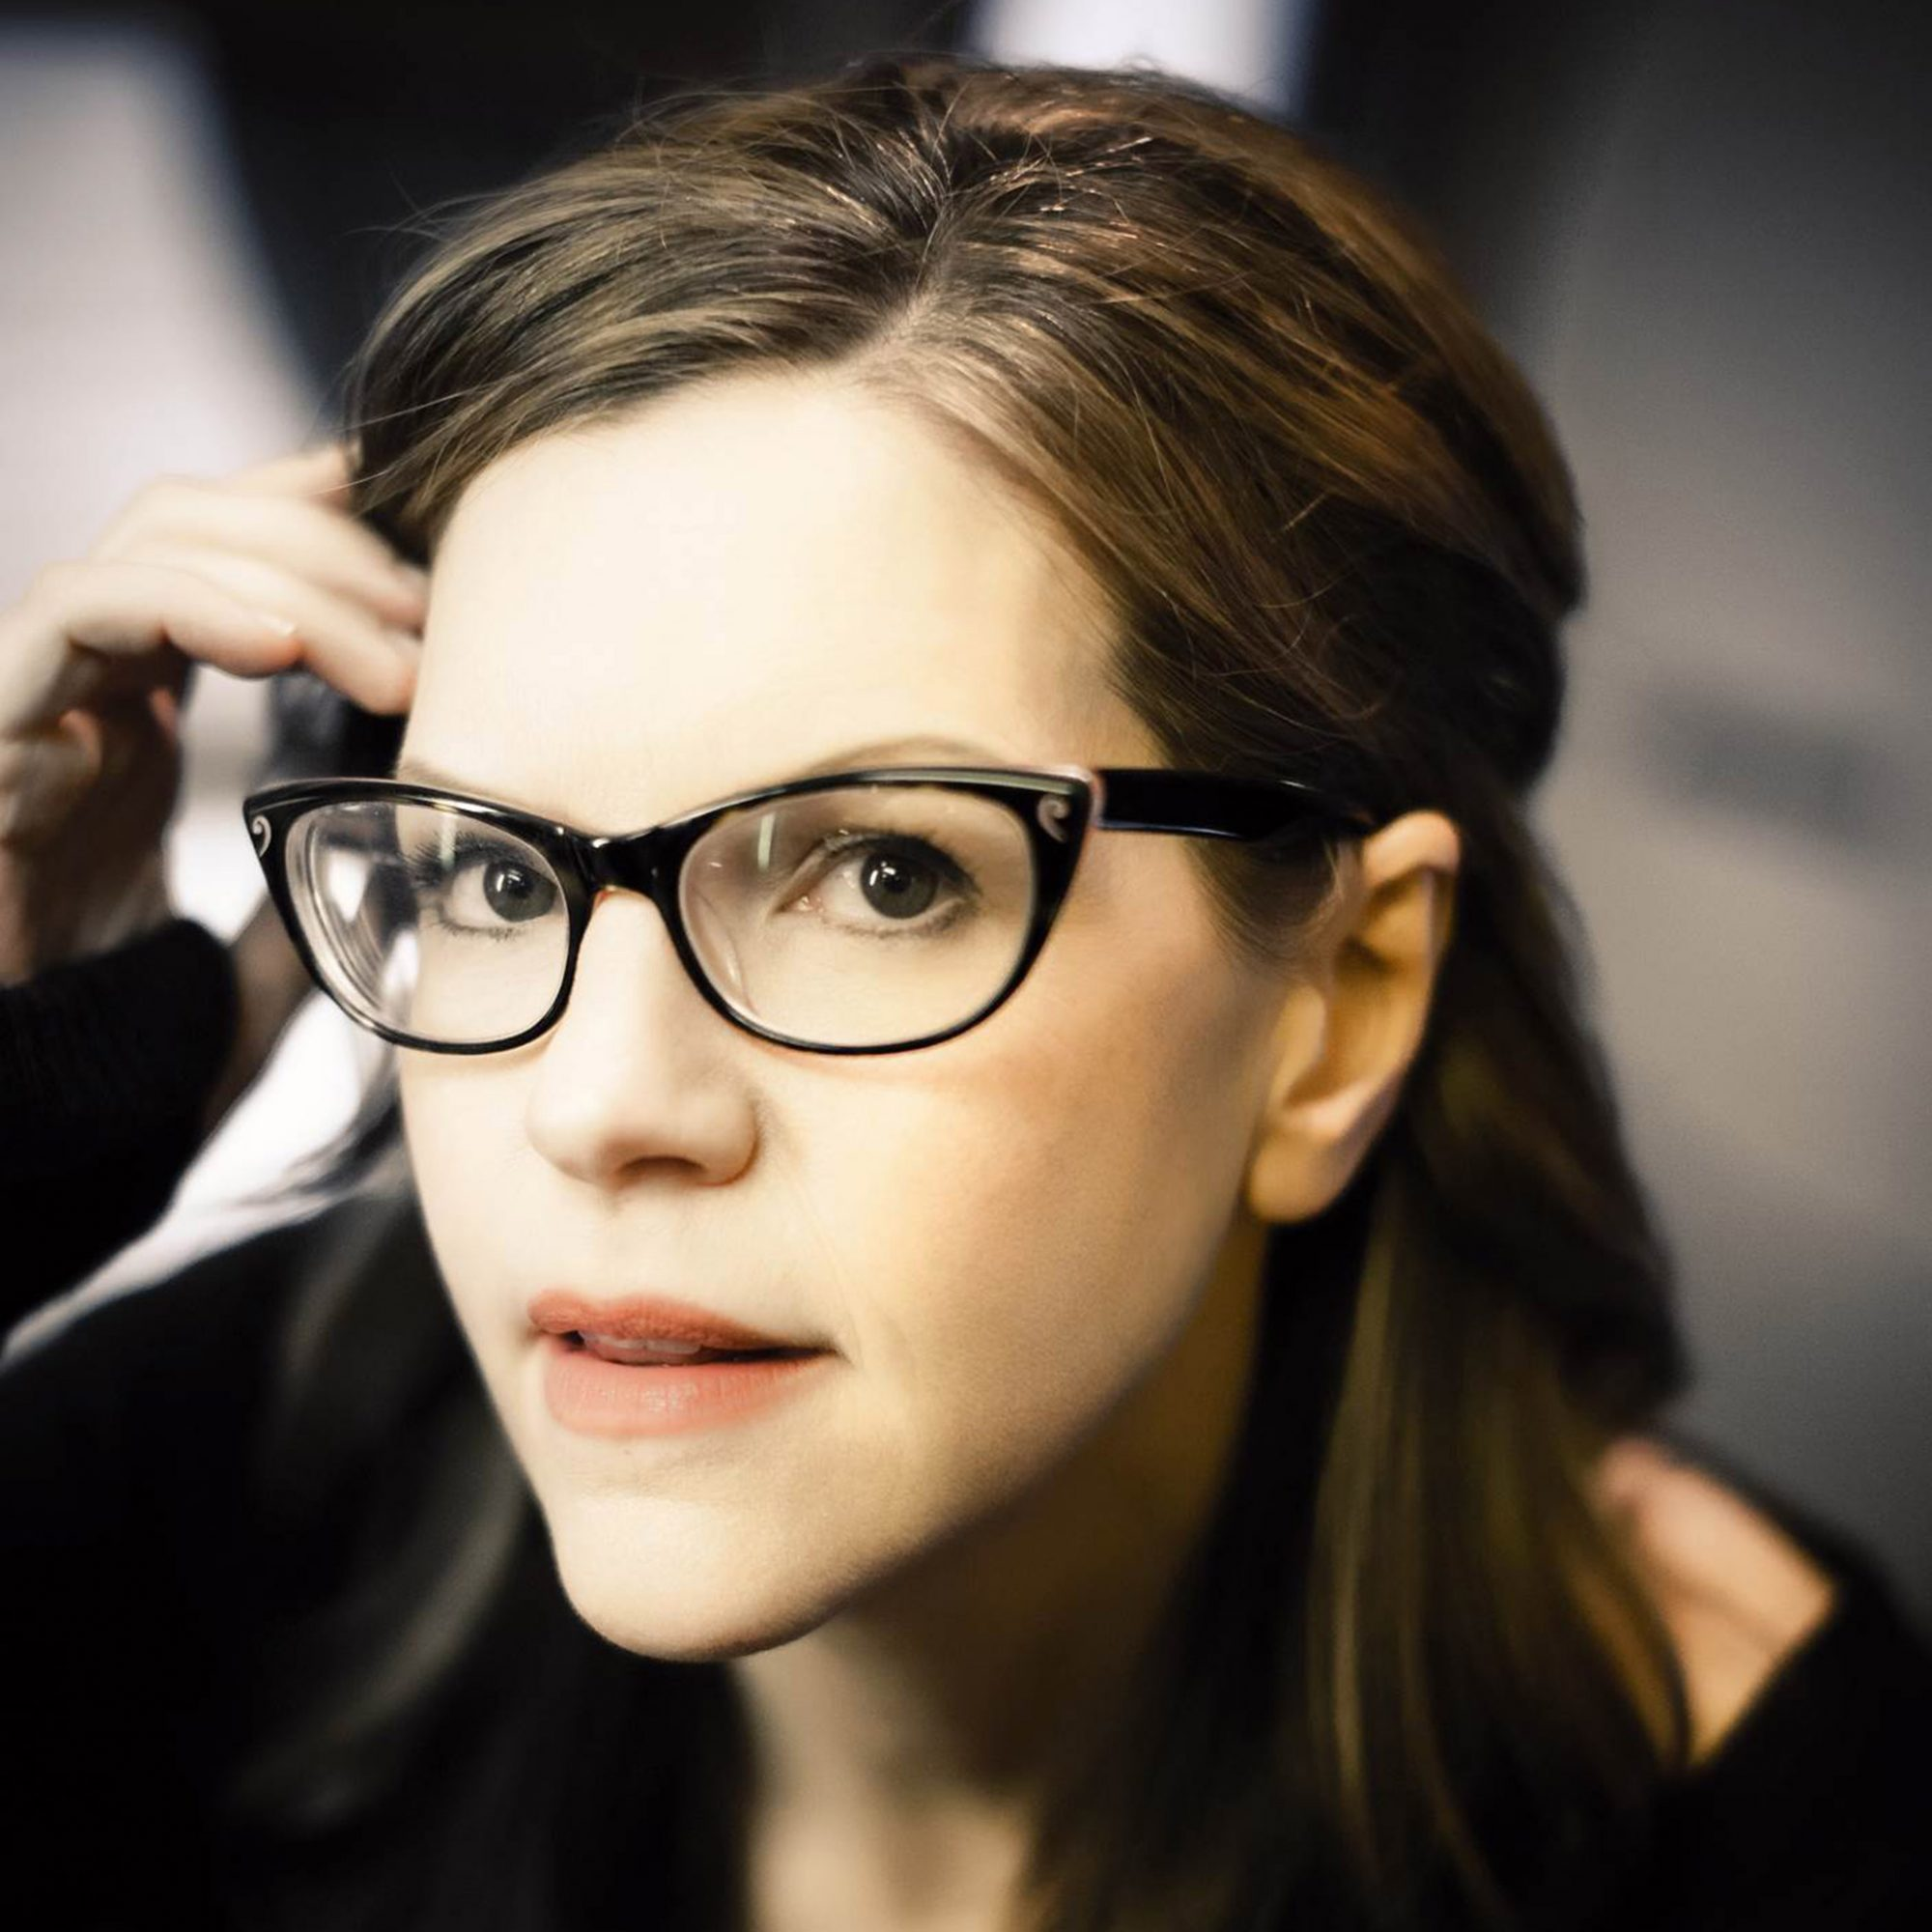 FWX DREAM RIDER LISA LOEB